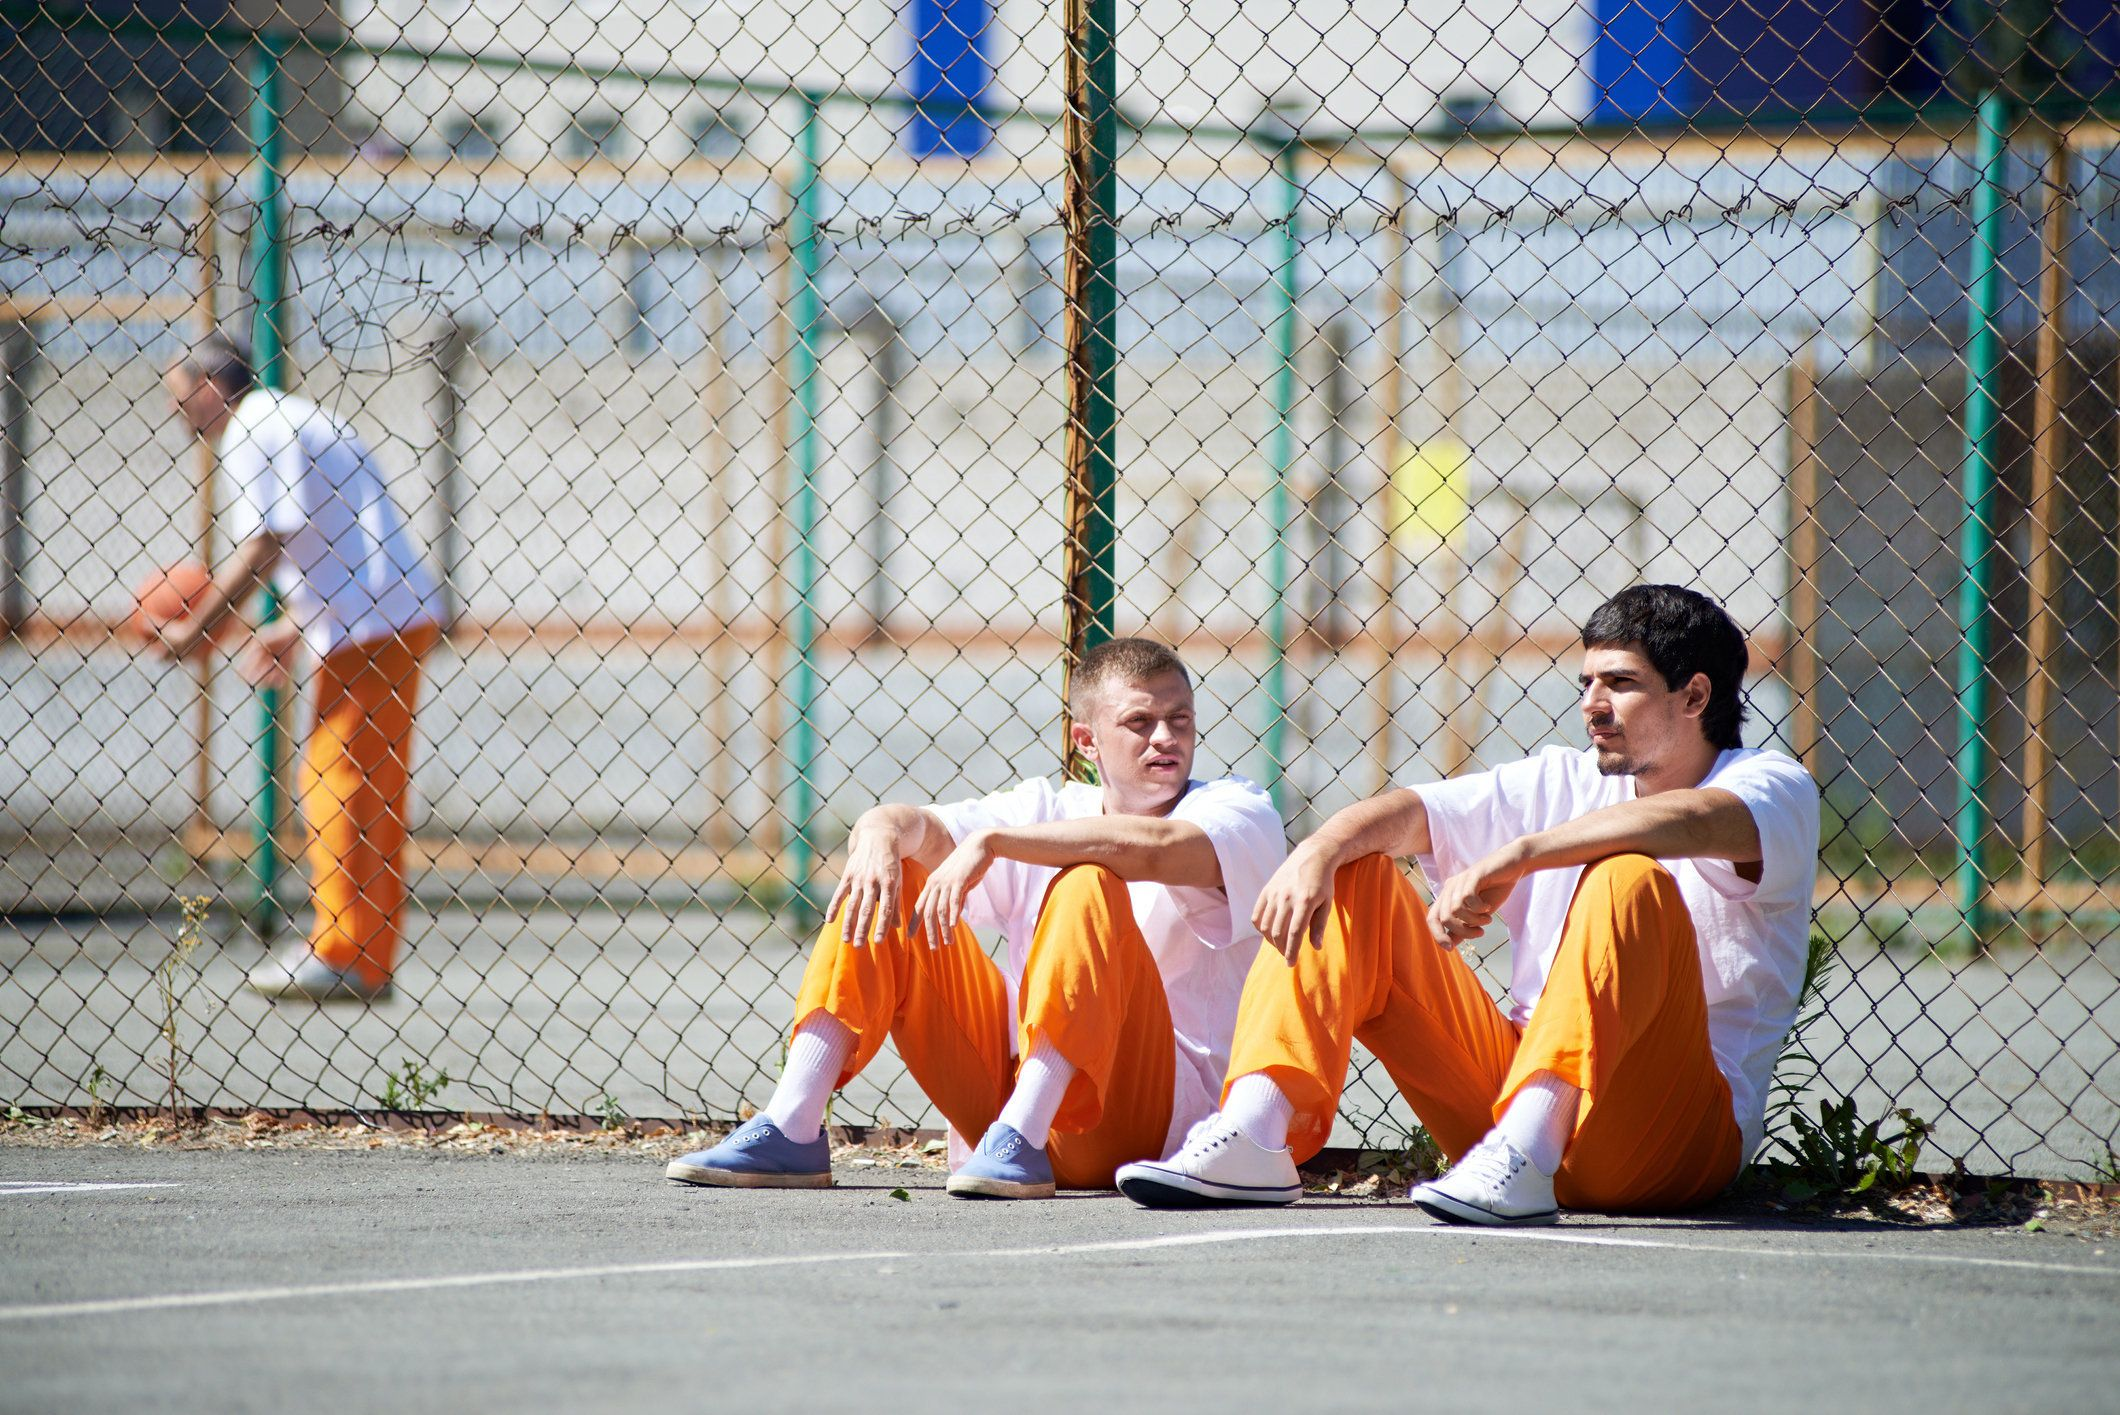 People who were incarcerated as juveniles could have lasting physical and mental health problems, according to a new study.